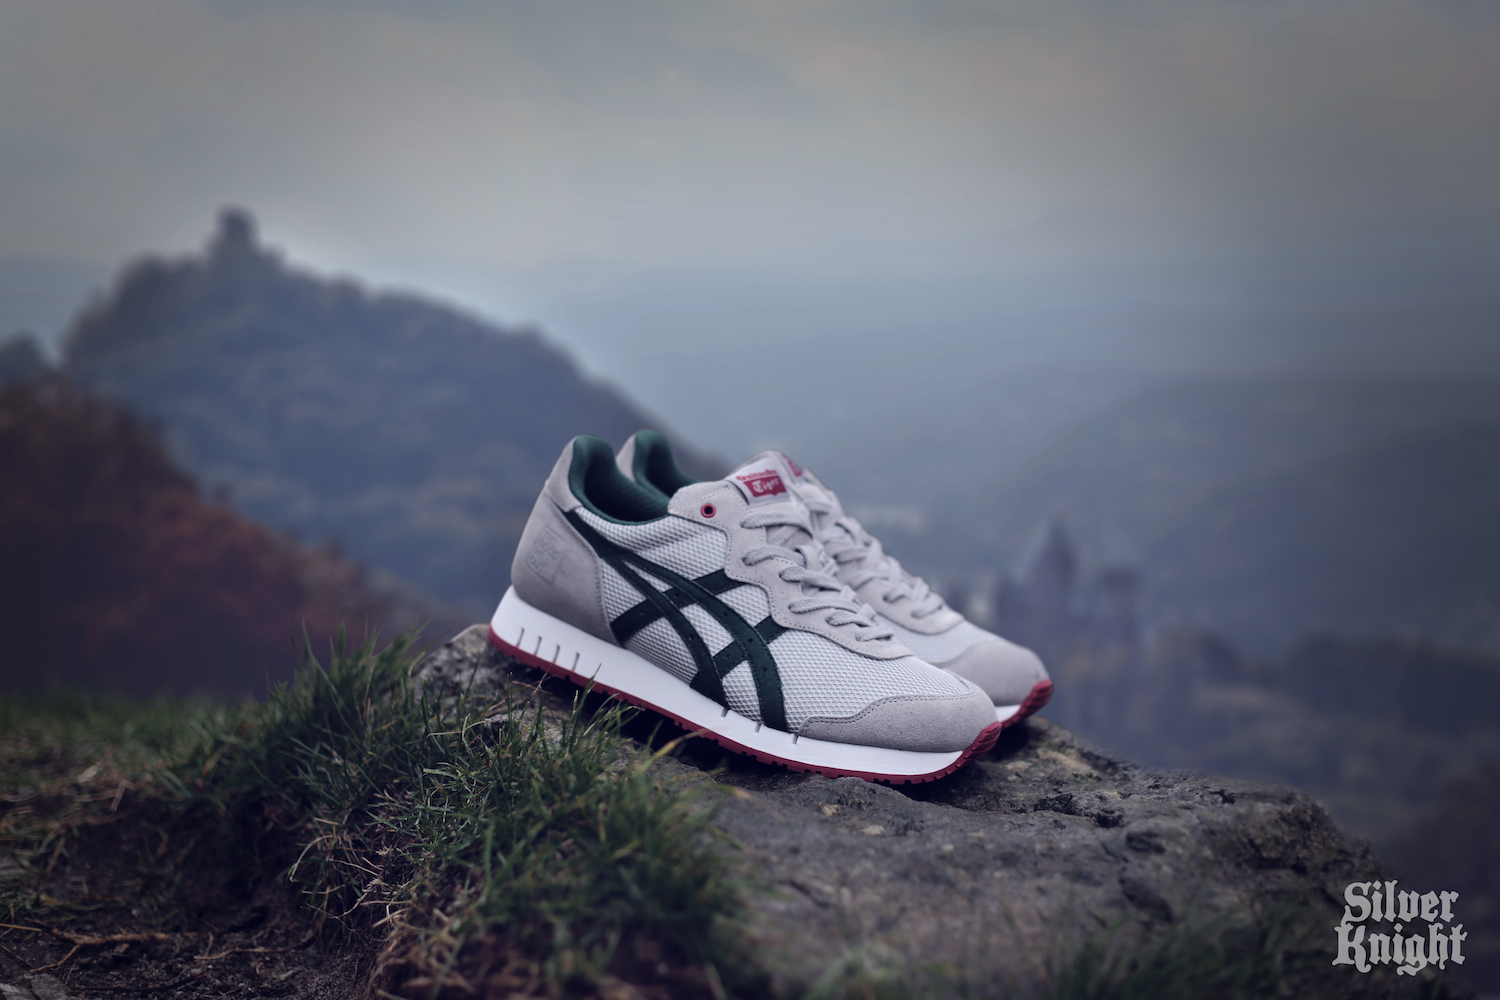 The Good Will Out x Onitsuka Tiger X-Caliber Silver Knight